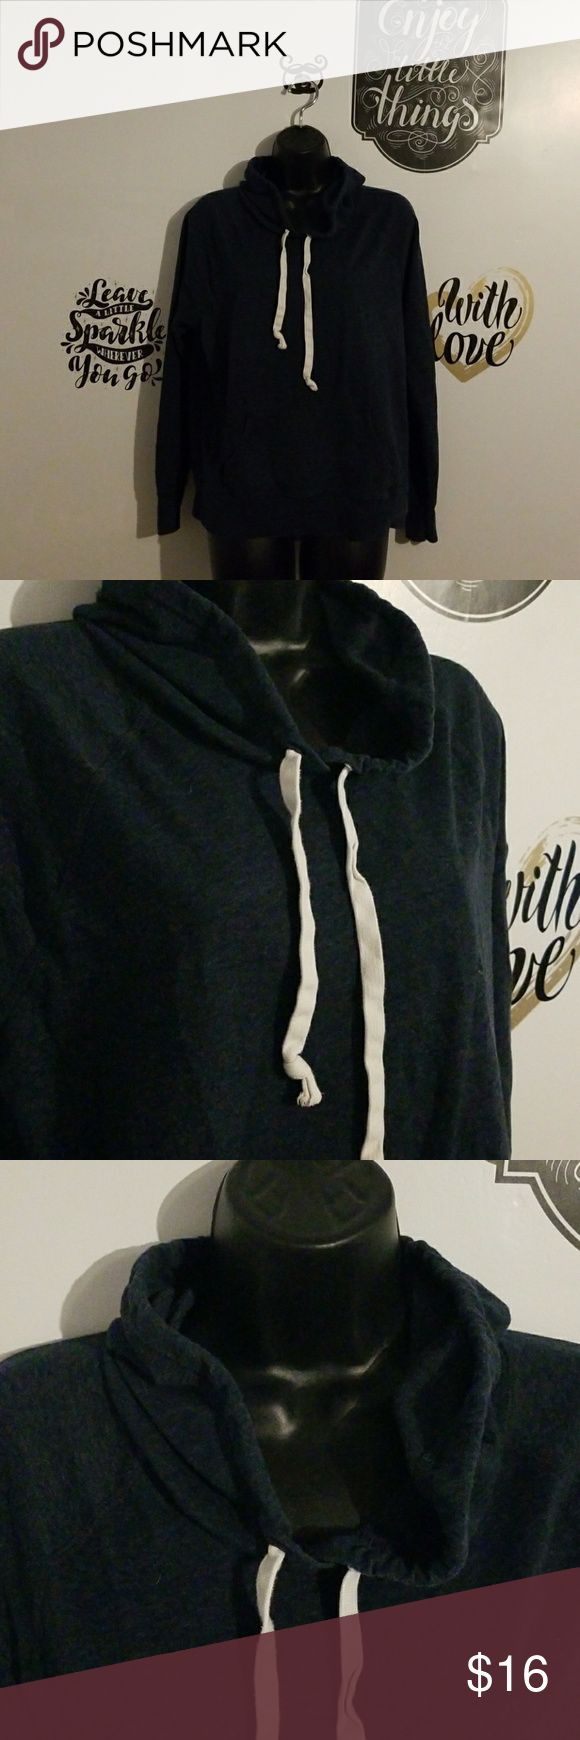 Old navy women sz L pull over hoody blue Blue old navy pull over hoody In good used condition  As marker mark on tag Old Navy Tops Sweatshirts & Hoodies